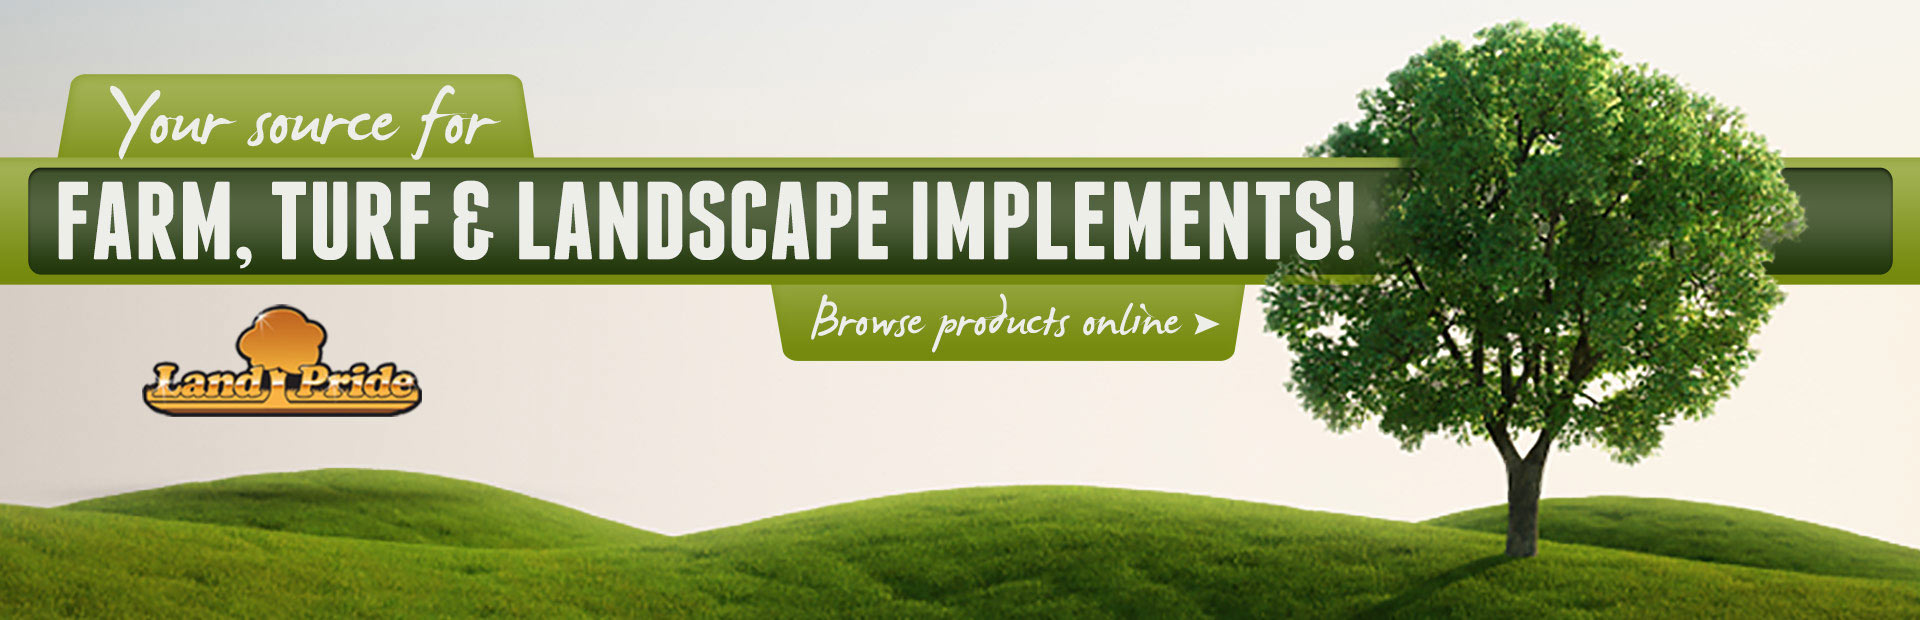 We Are Your Source For Farm, Turf, And Landscape Implements!